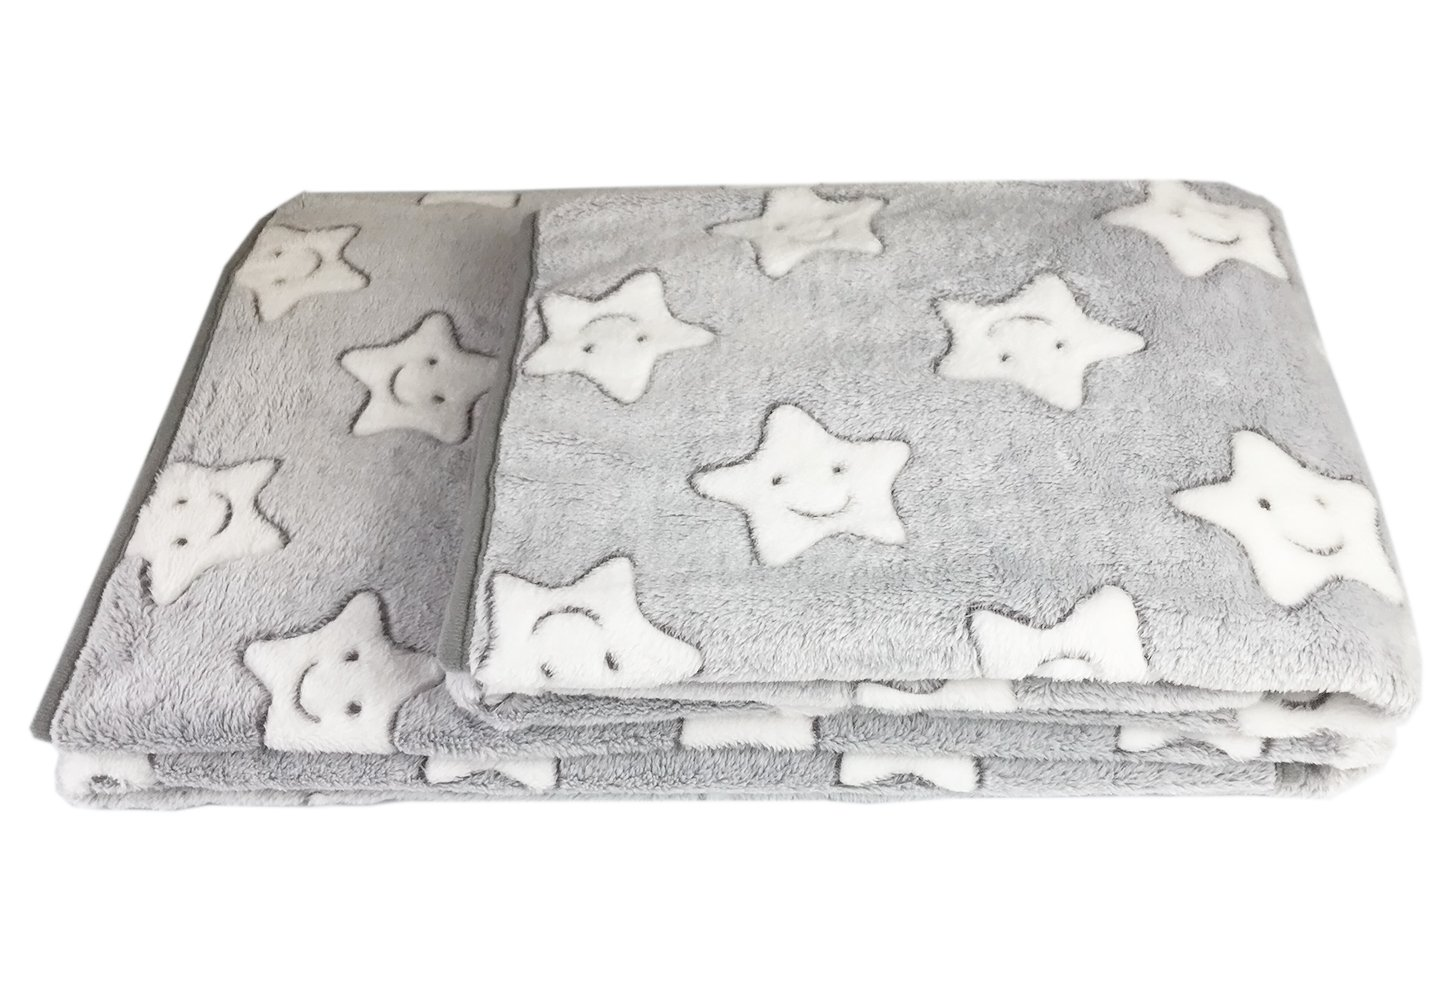 DANCE YOU PRIMA Super Soft Premium Flannel Fleece and Warm Dog Cat Puppy Bed Blanket Washable For Small Medium Large Pet Grey 75*100cm JY-TZ04-GR-L